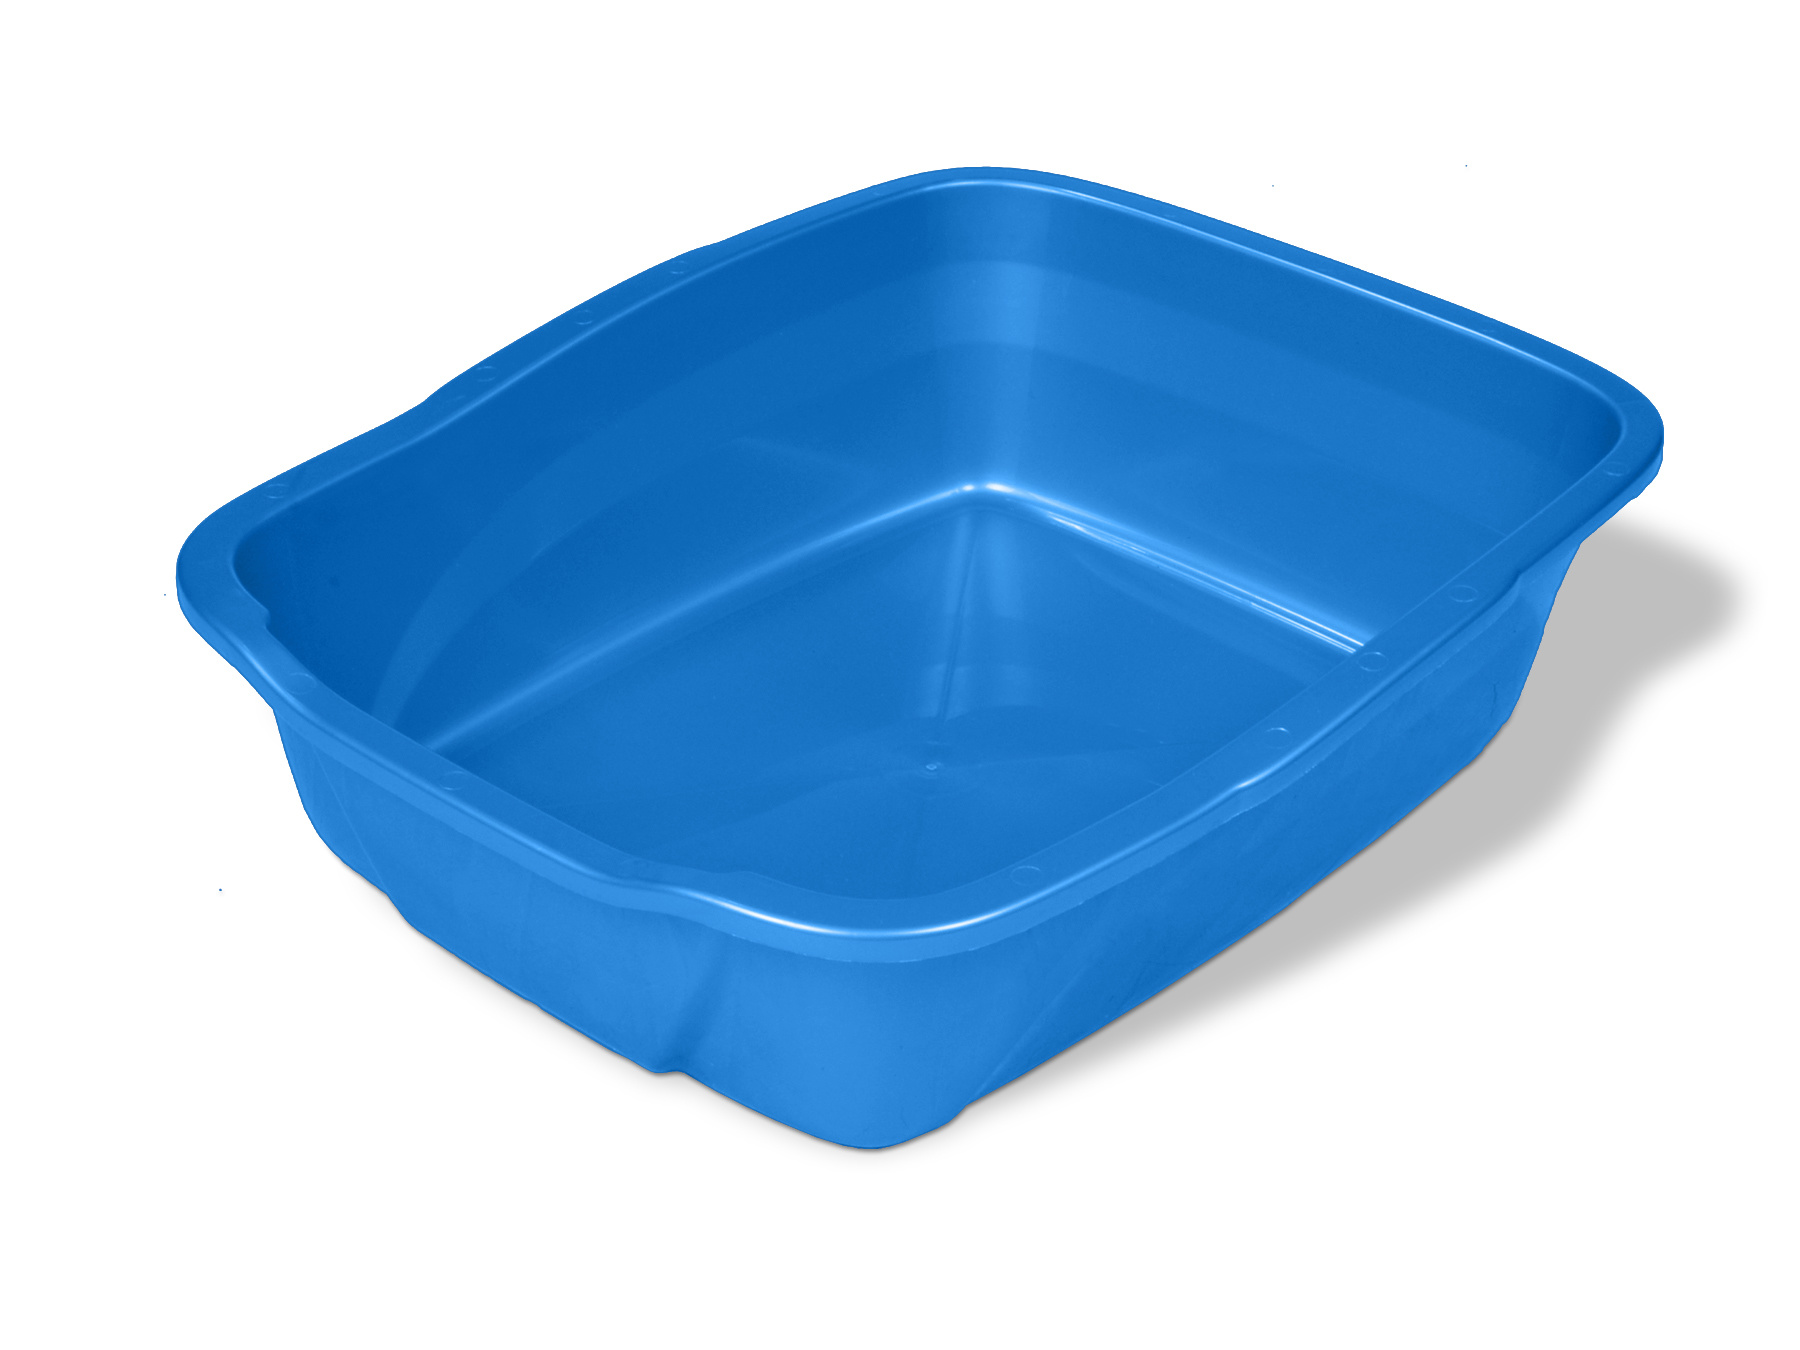 VANNESS Vanness Giant Litter Pan Product Image